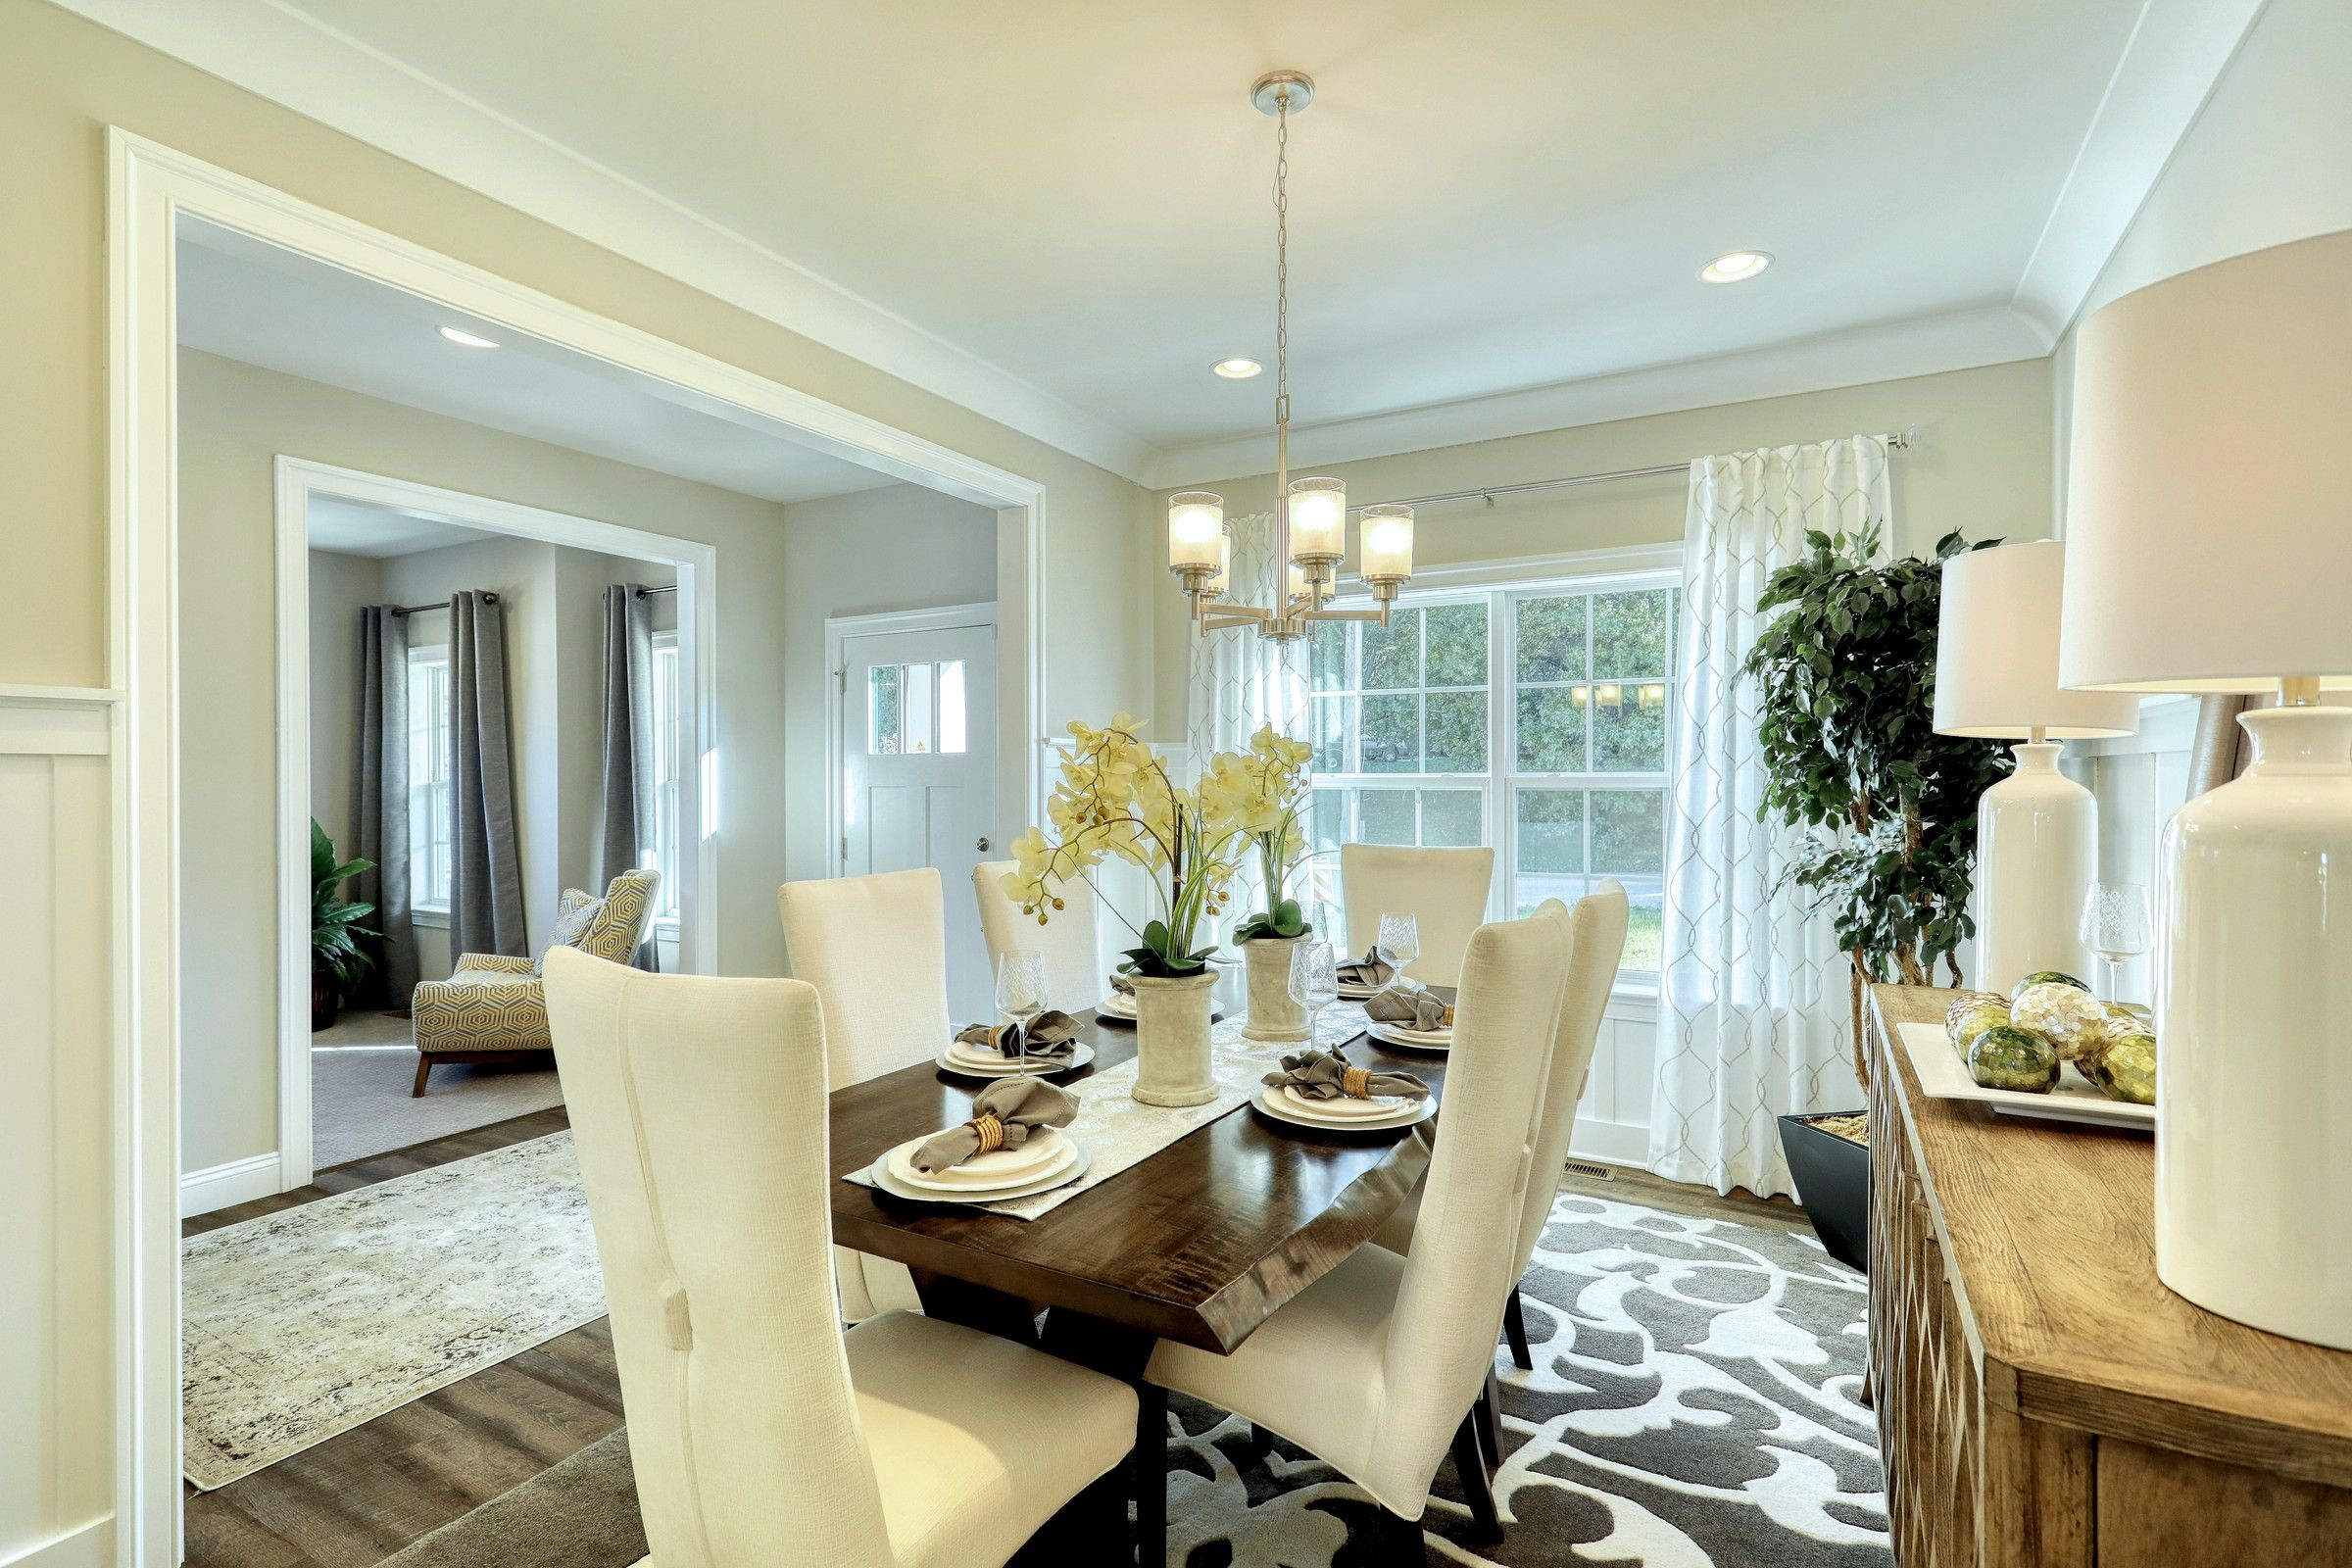 Living Area featured in the Parker Heritage By Keystone Custom Homes in York, PA